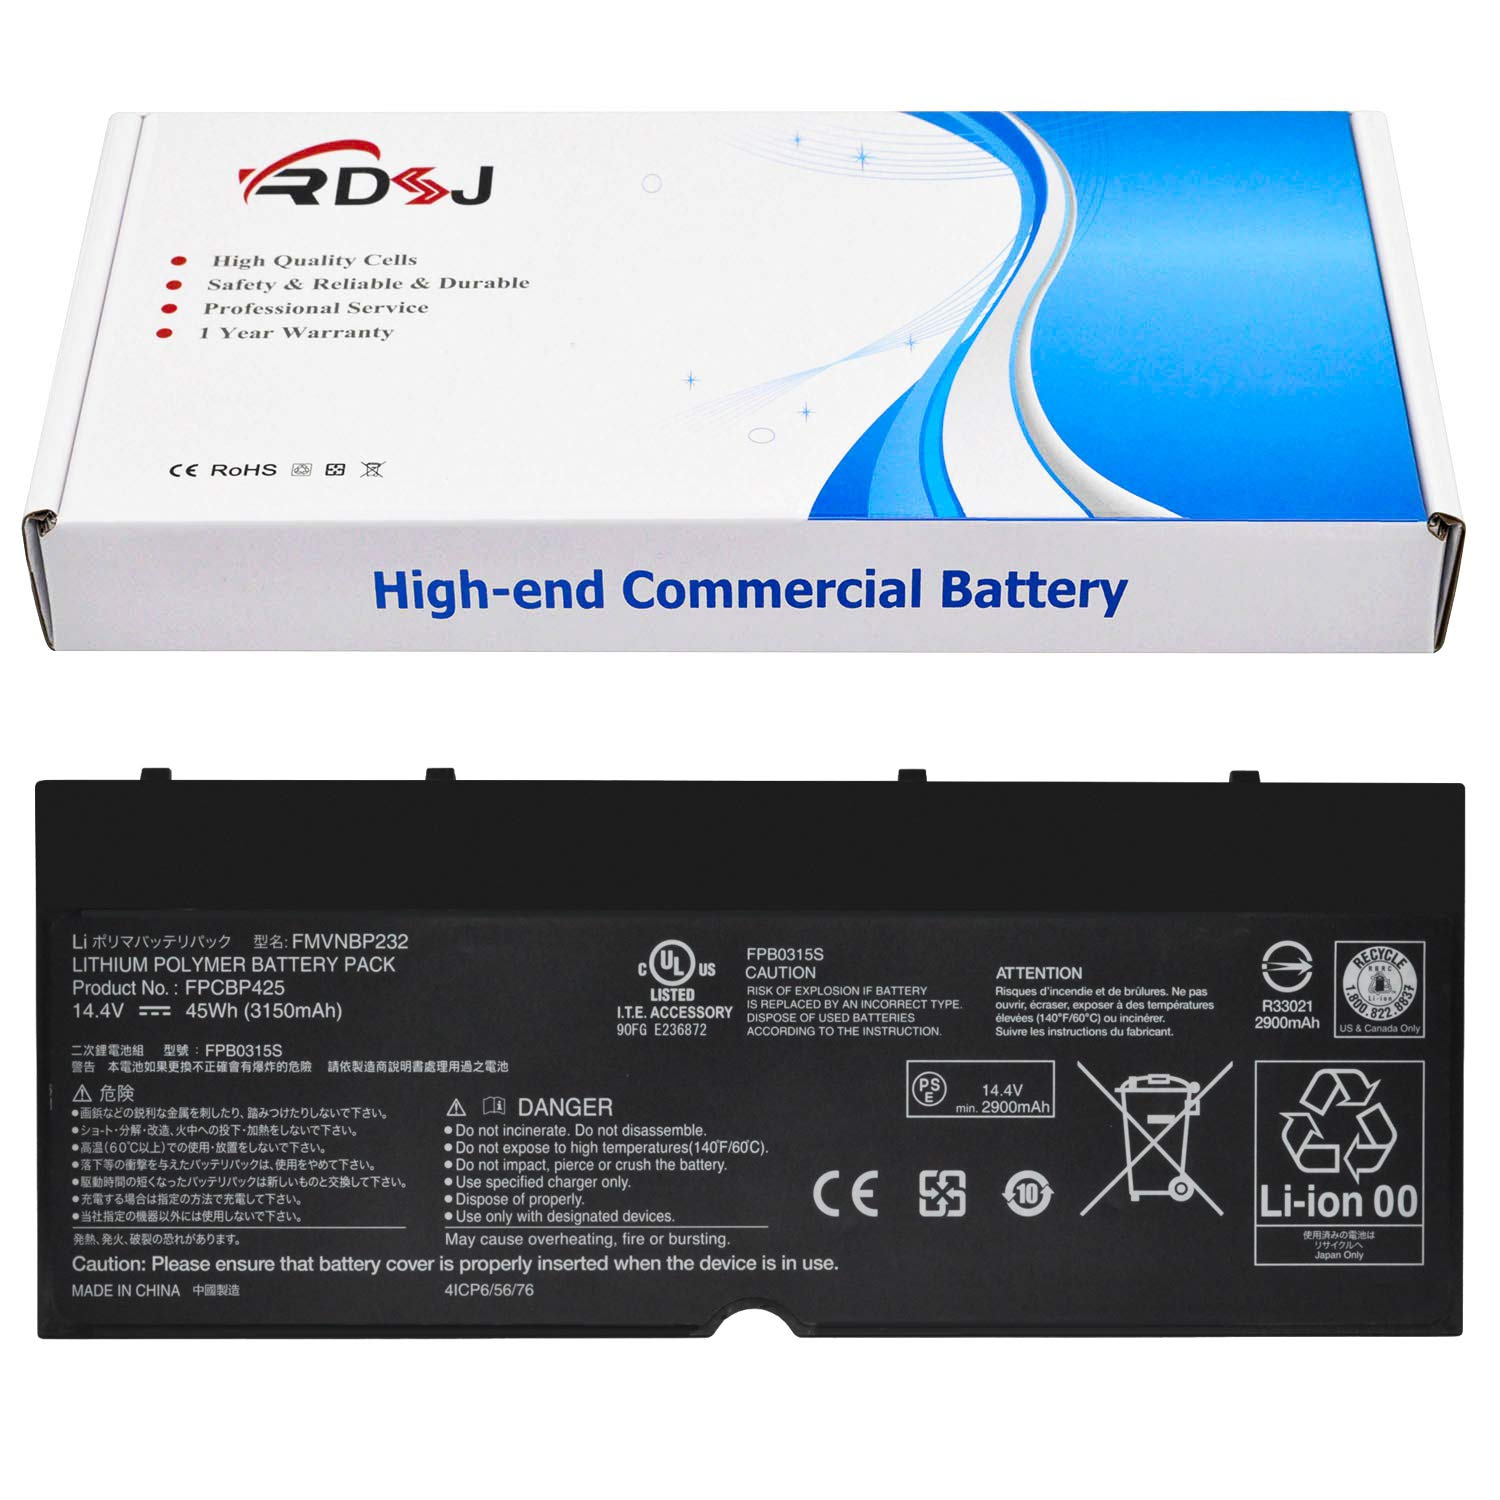 FPCBP425 FMVNBP232 Laptop Battery Compatible Fujitsu Lifebook U745 T935 T904U Series 14.4V 45Wh